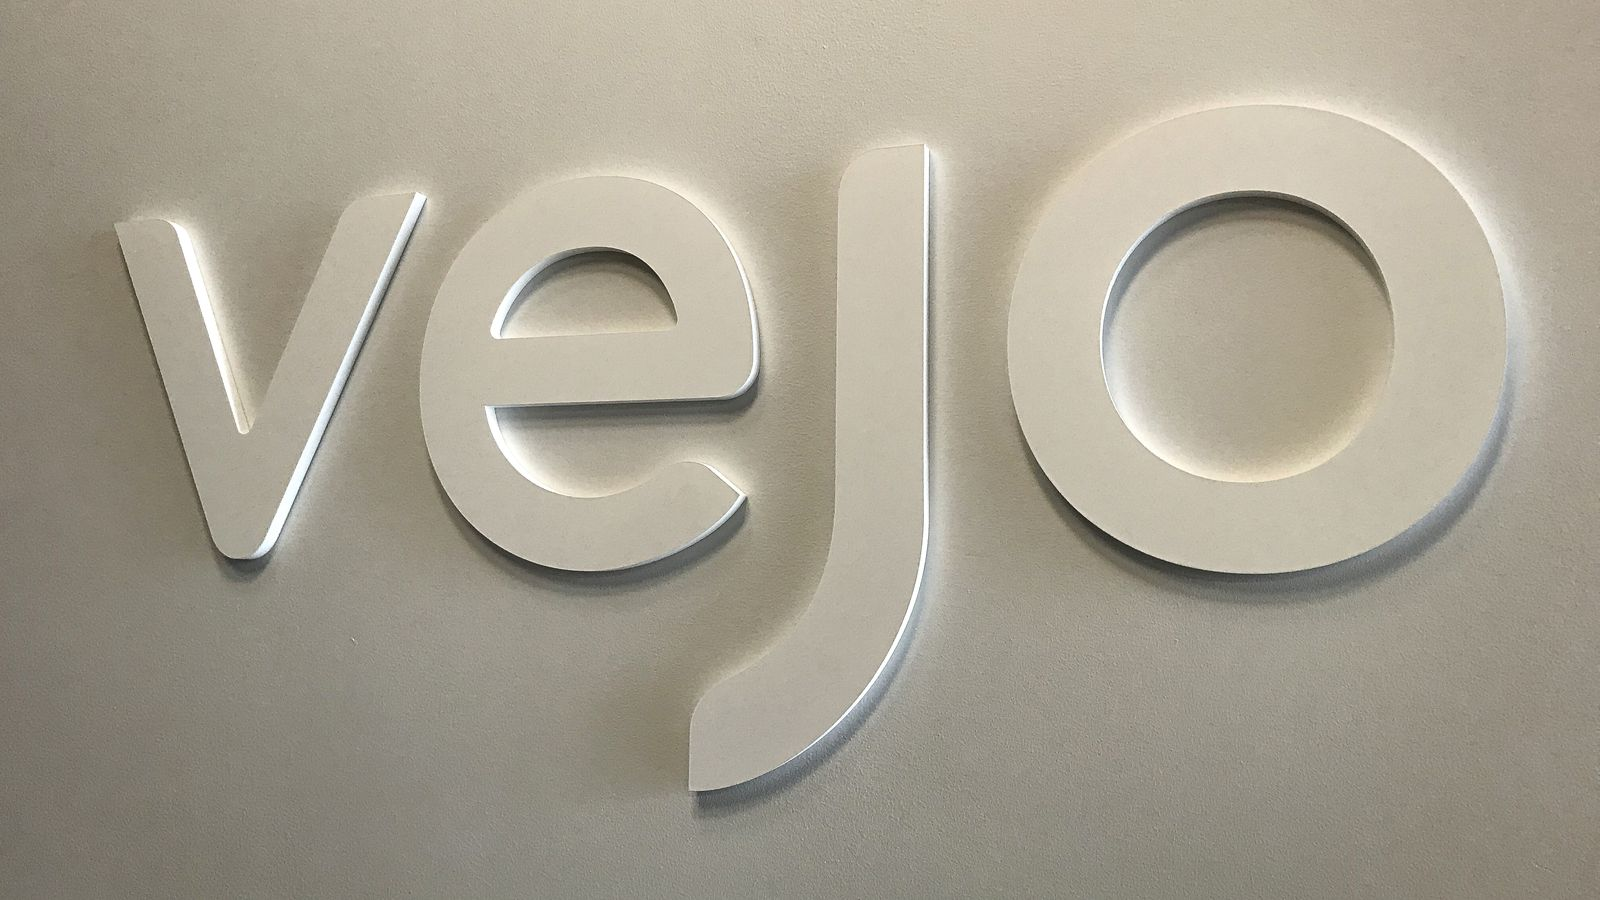 Vejo 3d office sign in white color in an elegant style made of PVC for interior branding